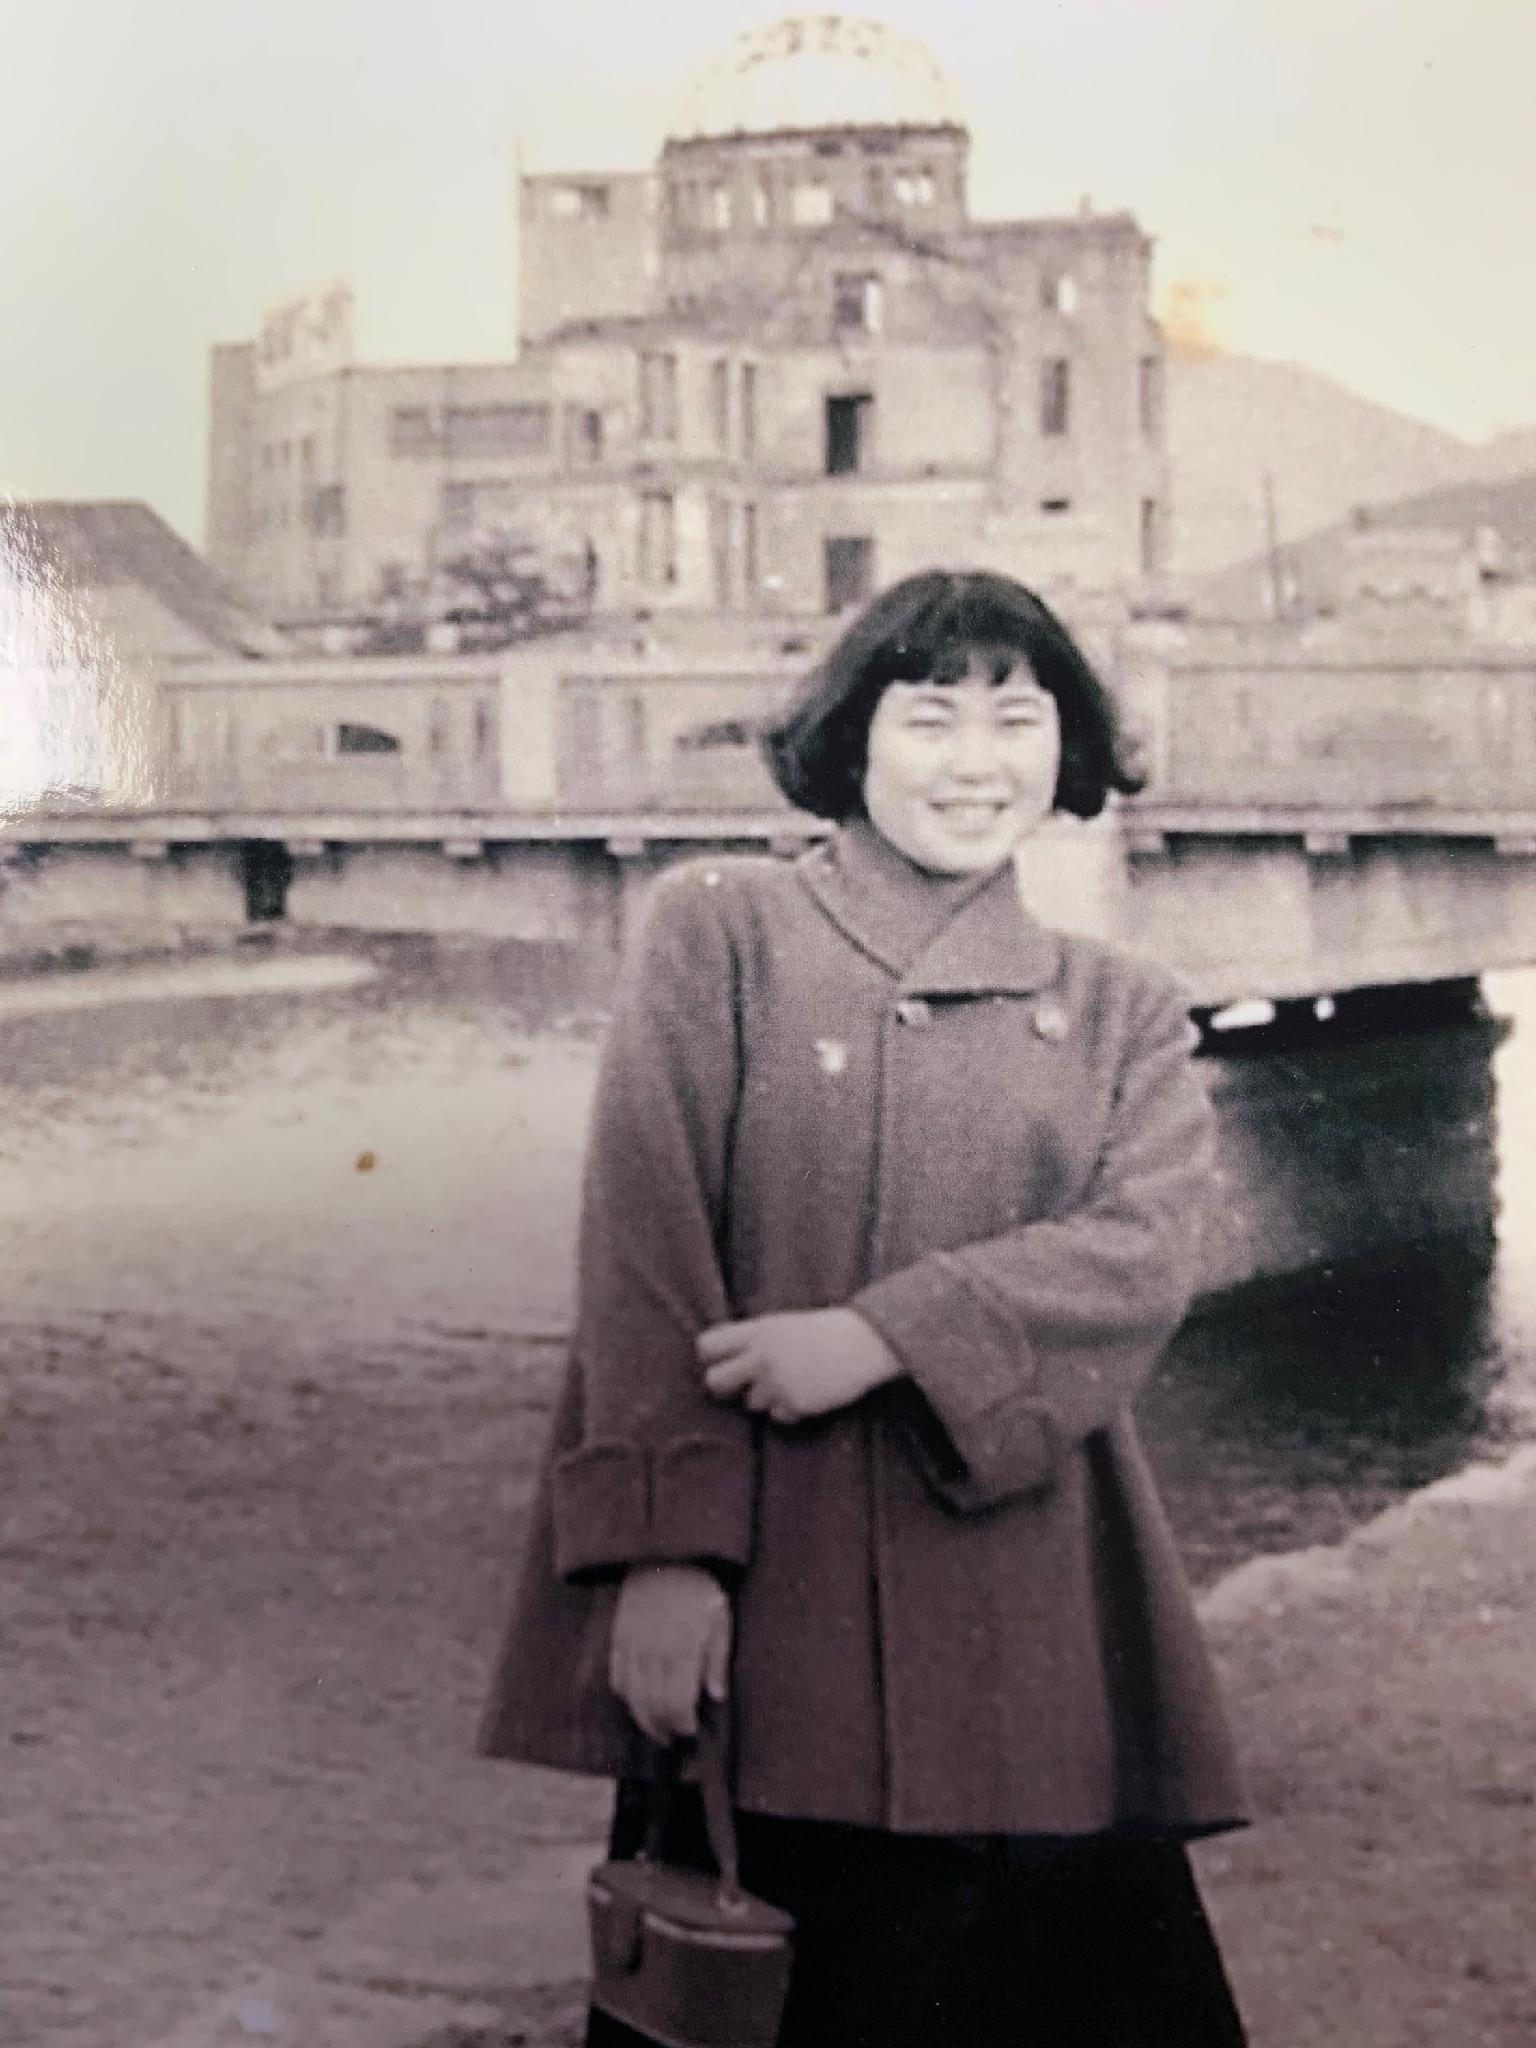 Sumiko Yoshida survived the bombing of Hiroshima 75 years ago. Here she is at age 16 in front of the Gembaku Dome at the Hiroshima Peace Memorial in 1952.